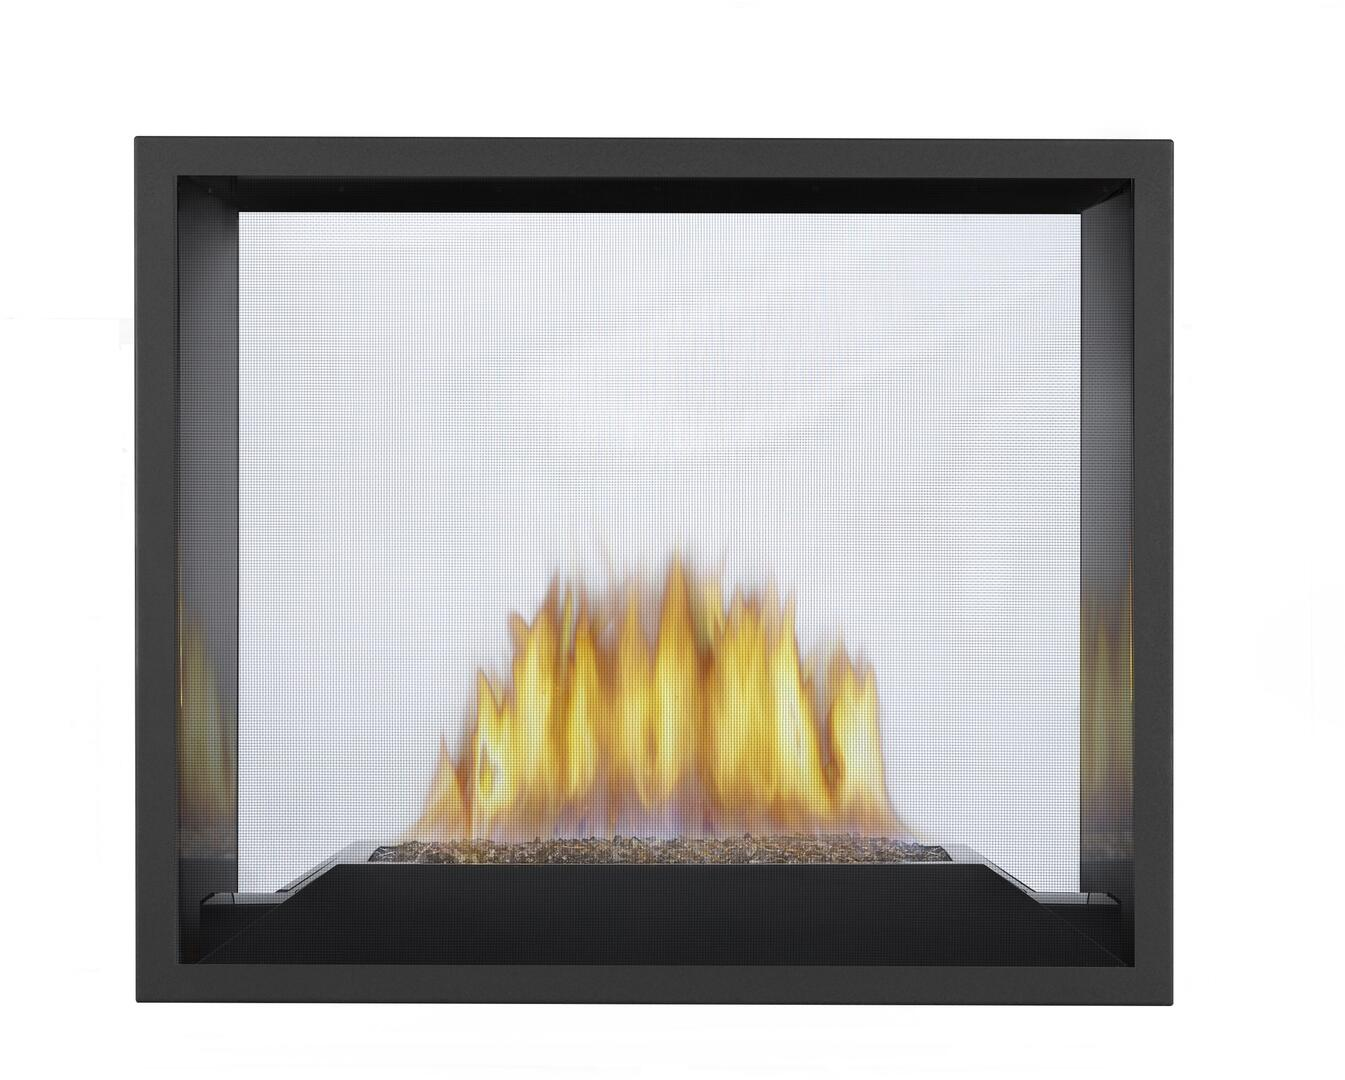 Glass Screen For Gas Fireplace Napoleon Hd81nt1